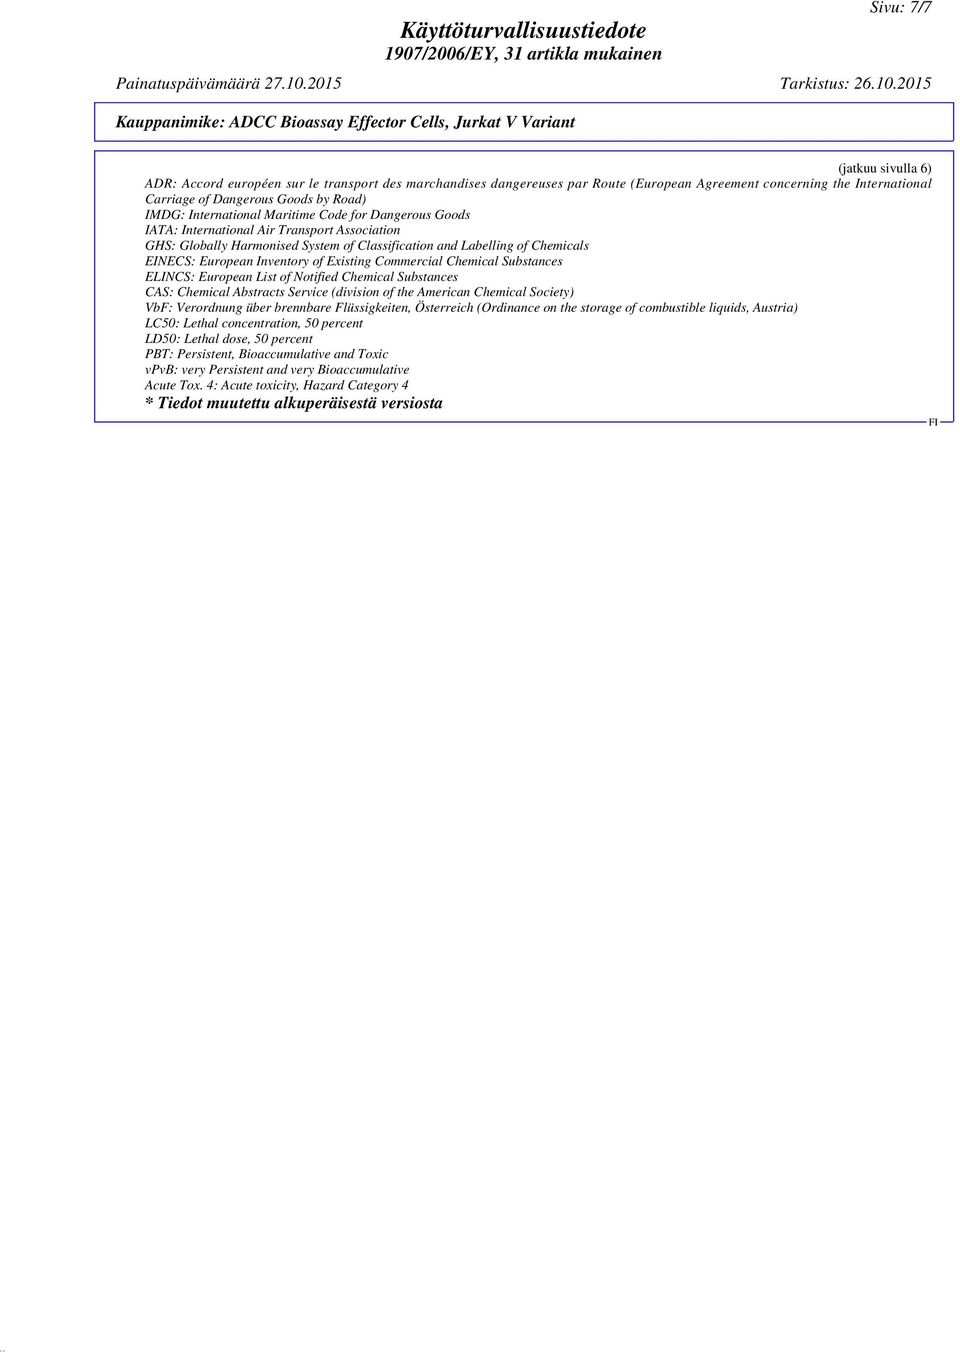 of Existing Commercial Chemical Substances ELINCS: European List of Notified Chemical Substances CAS: Chemical Abstracts Service (division of the American Chemical Society) VbF: Verordnung über